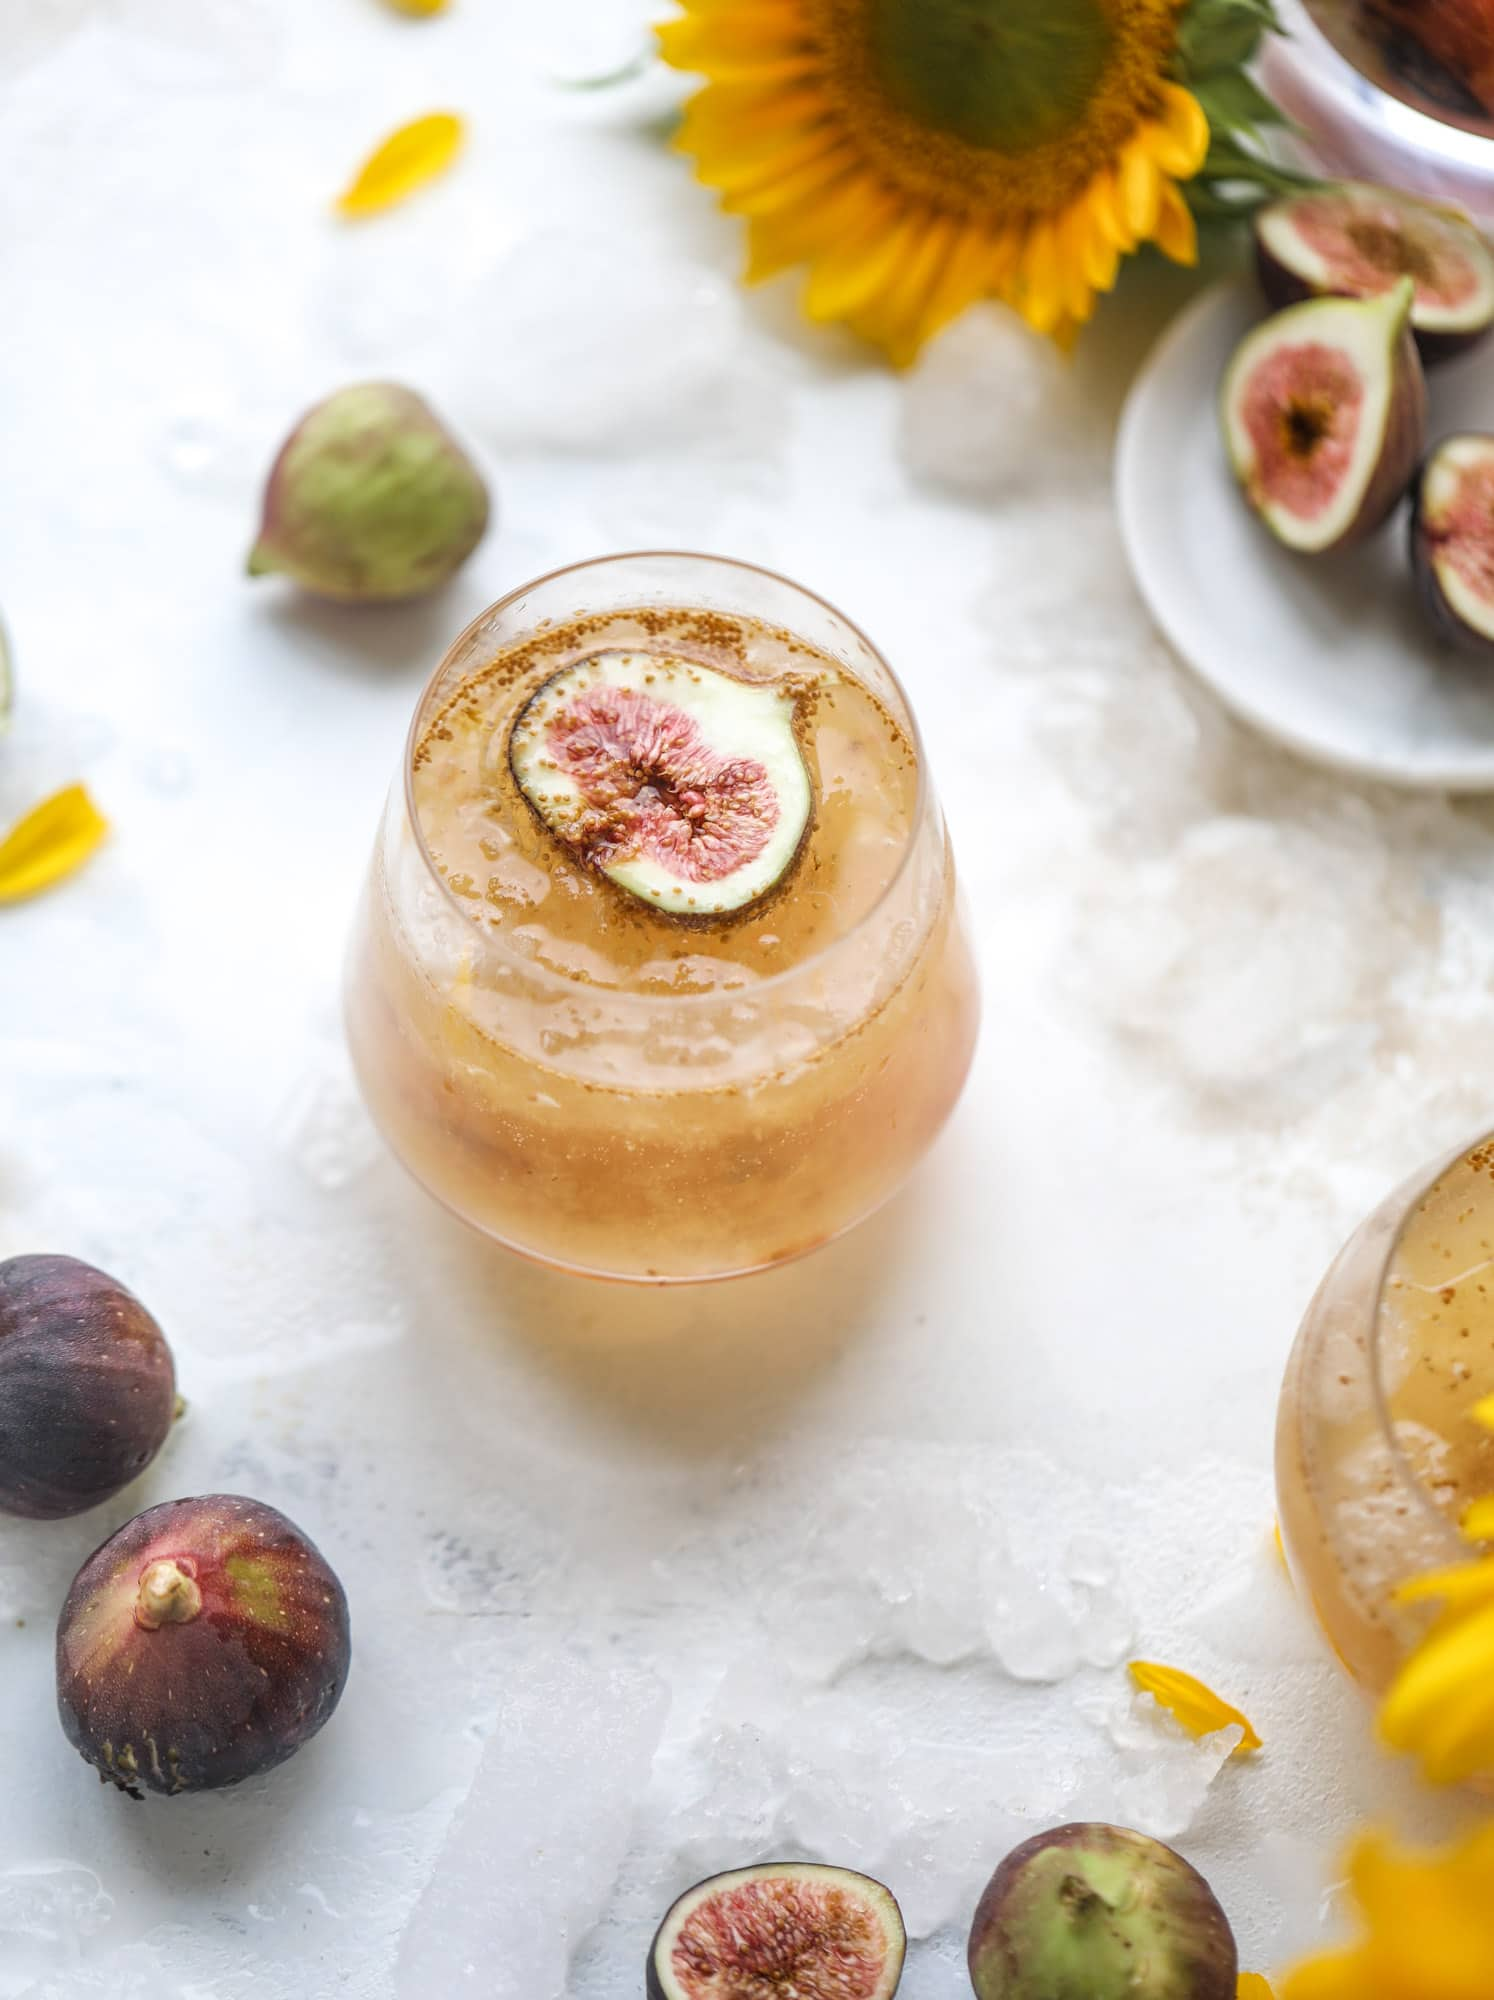 This new fig cocktail is so delicious and perfect for your fresh juicy figs! Muddle the fresh figs with brown sugar and a touch of lemon, then add them to a glass with crushed ice and pour some bubbly on top. I love Prosecco, but you can use a sweeter bubbly too! I howsweeteats.com #fig #cocktail #brown #sugar #prosecco